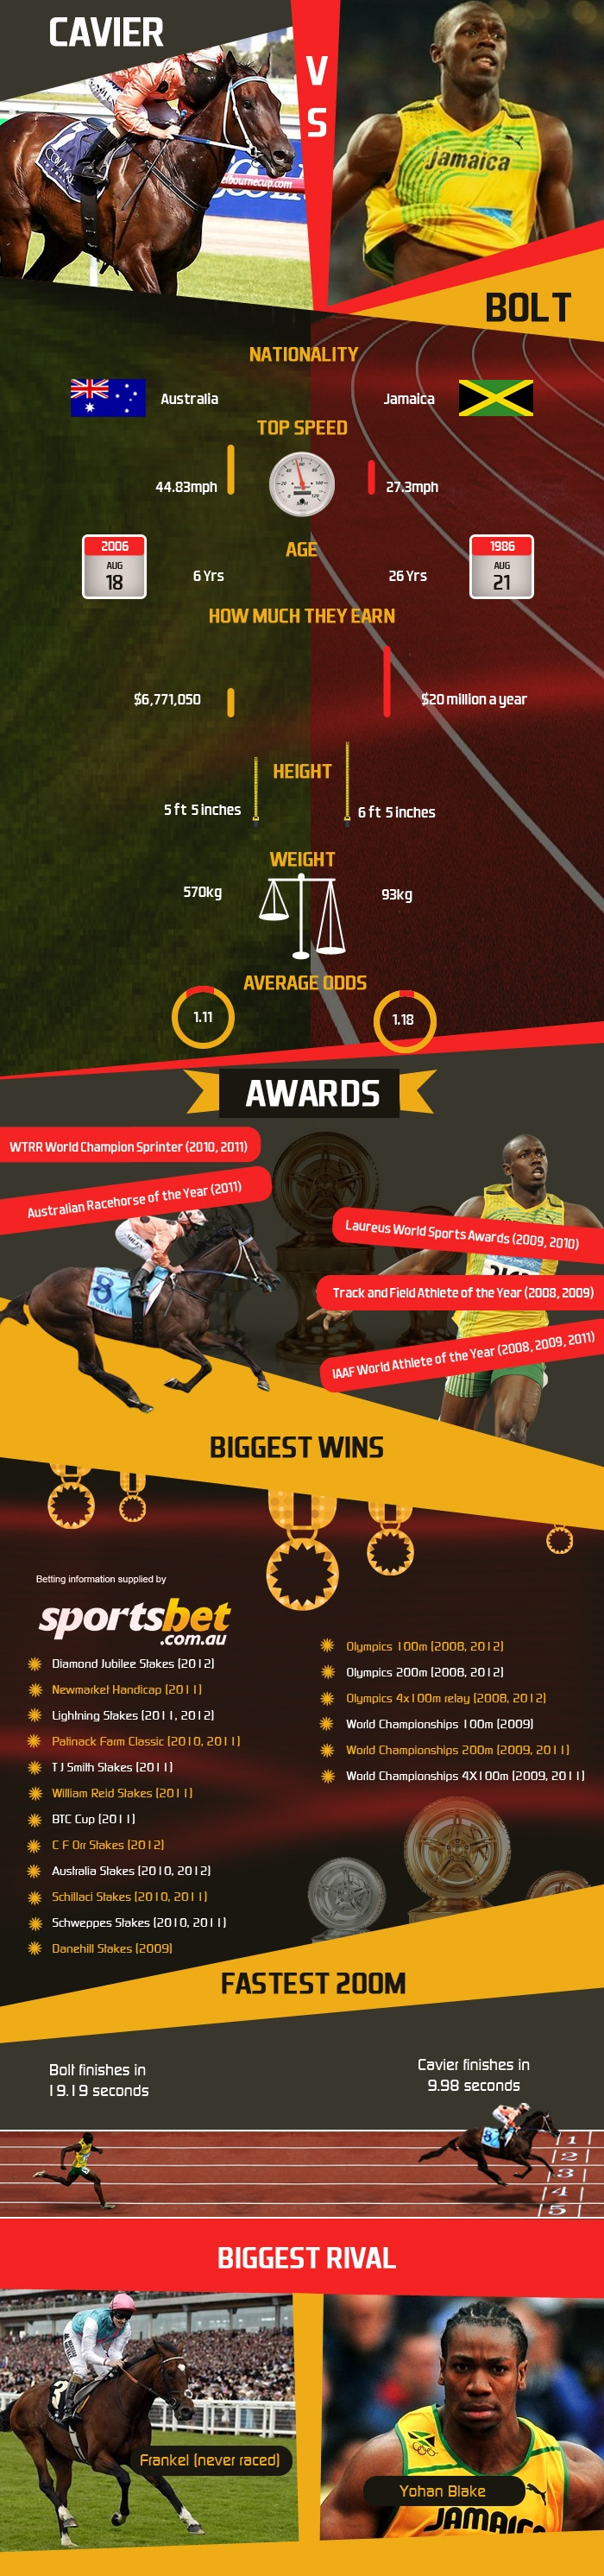 Spring Carnival Racing - What if Black Caviar was to race Usain Bolt?